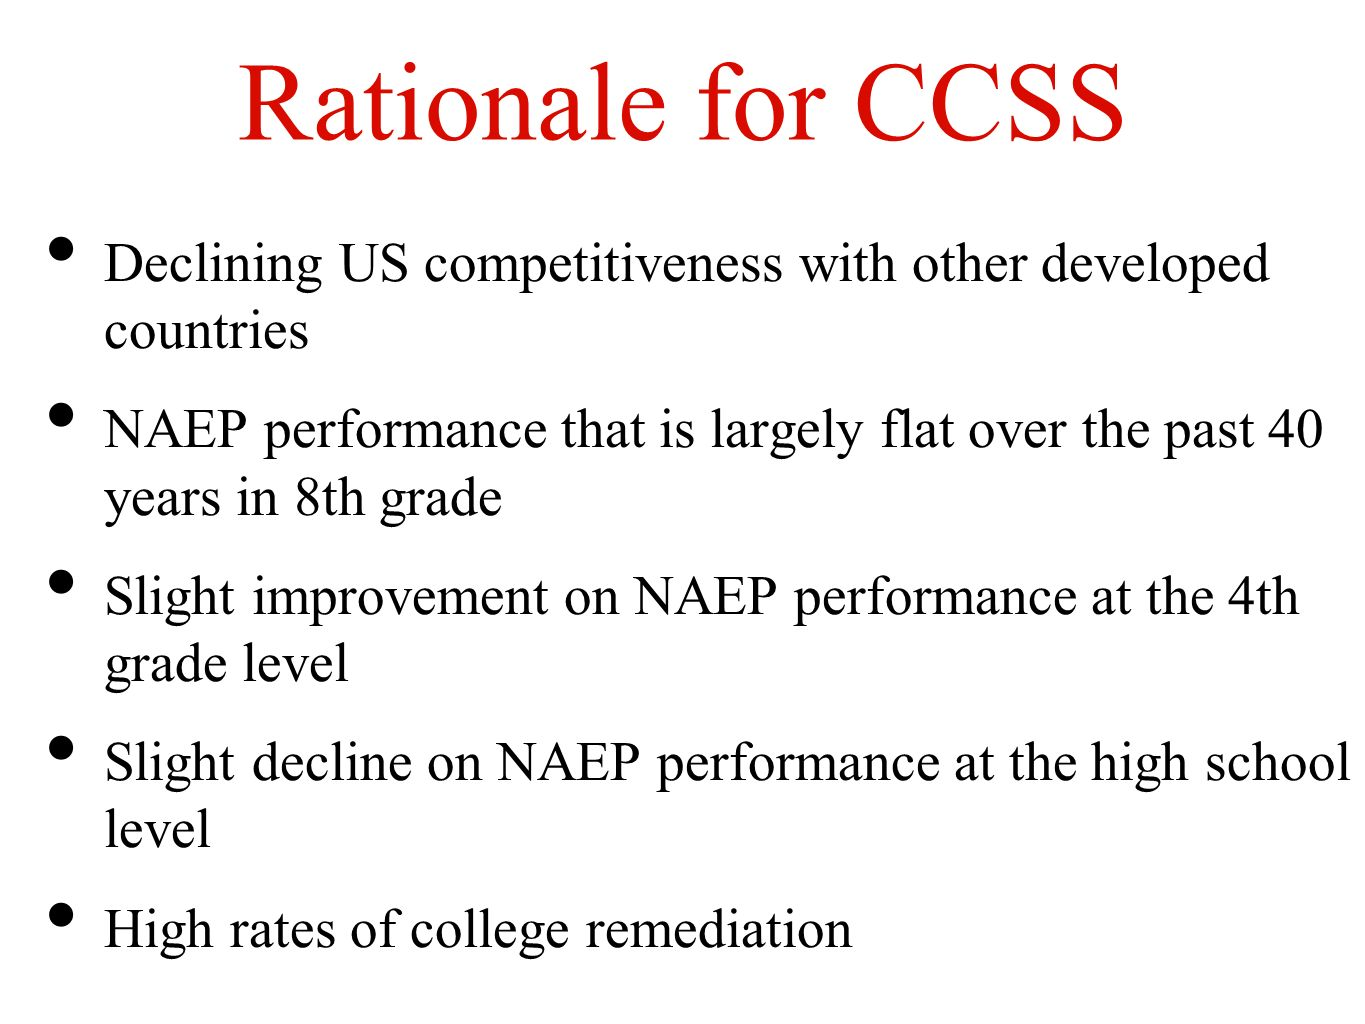 Rationale for CCSS Declining US competitiveness with other developed countries NAEP performance that is largely flat over the past 40 years in 8th grade Slight improvement on NAEP performance at the 4th grade level Slight decline on NAEP performance at the high school level High rates of college remediation